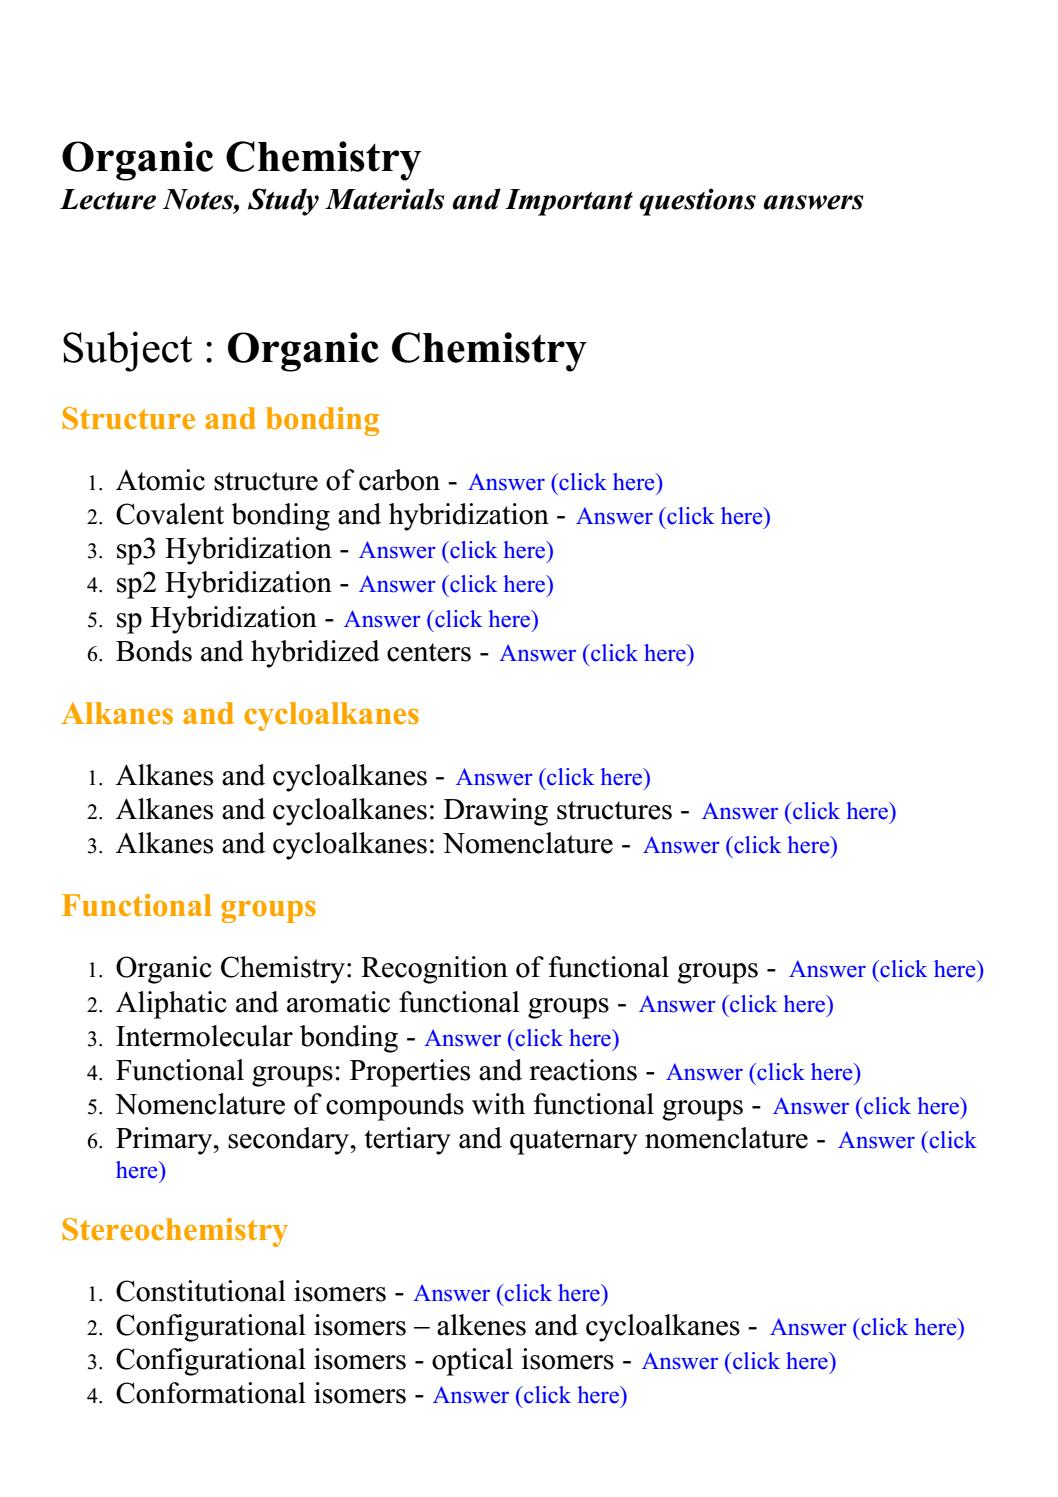 Organic chemistry - Lecture Notes, Study Materials and